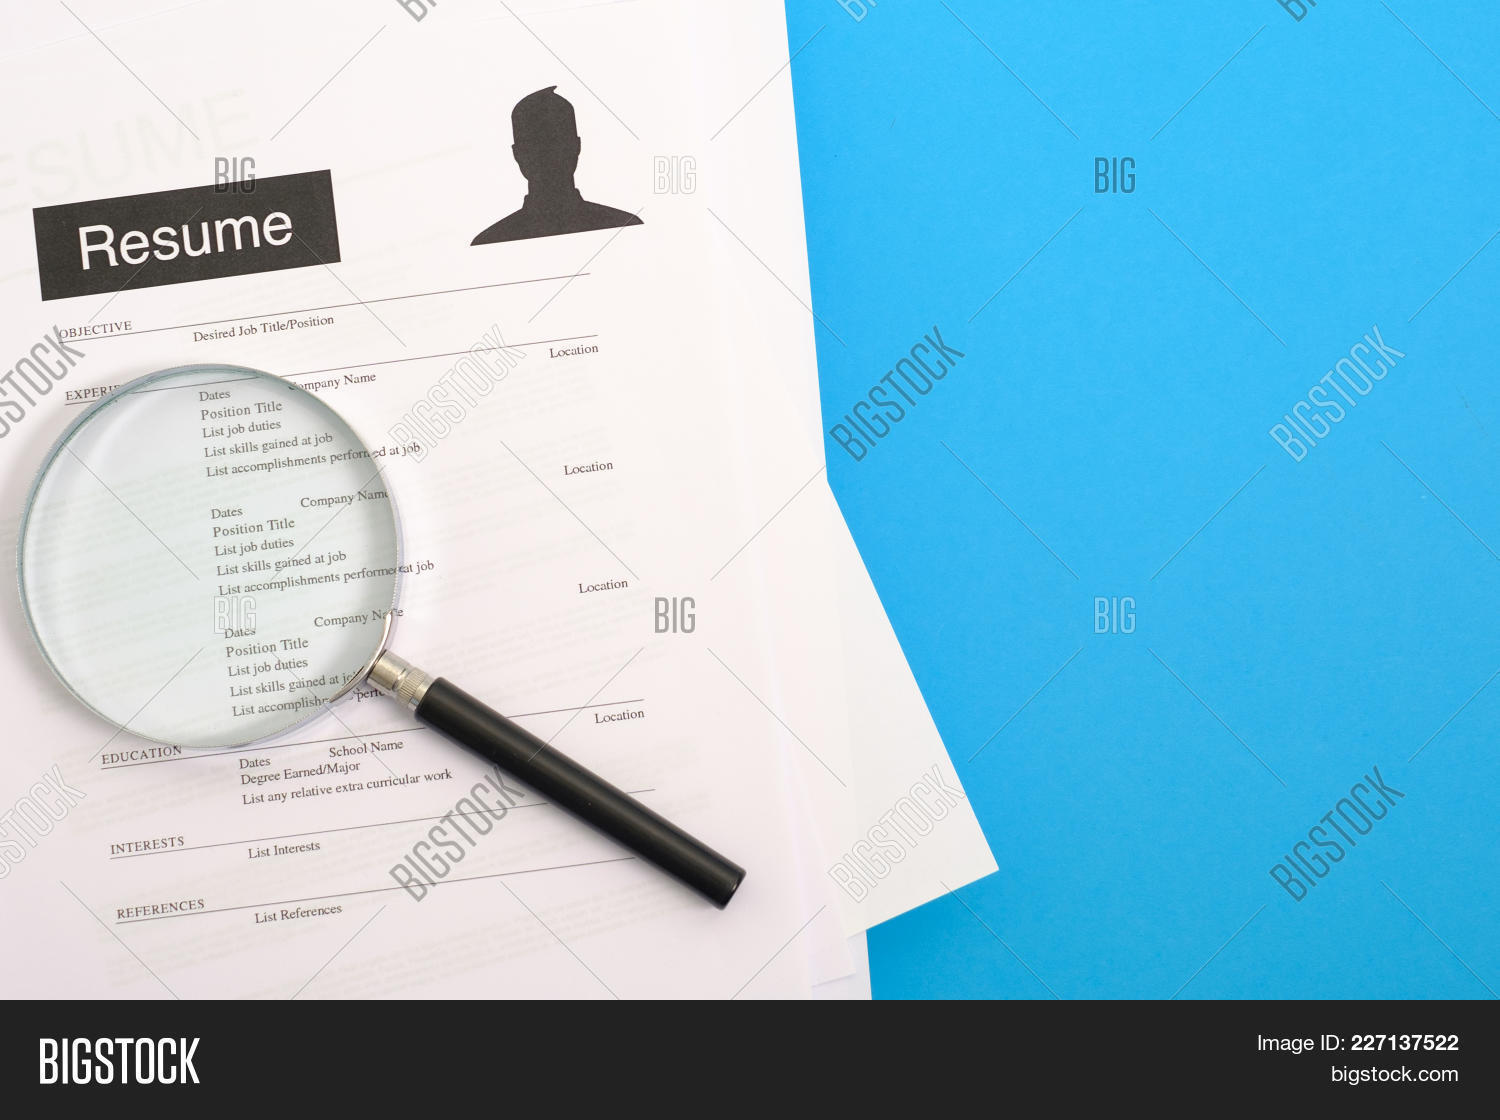 Job Search Interview Image & Photo (Free Trial)   Bigstock